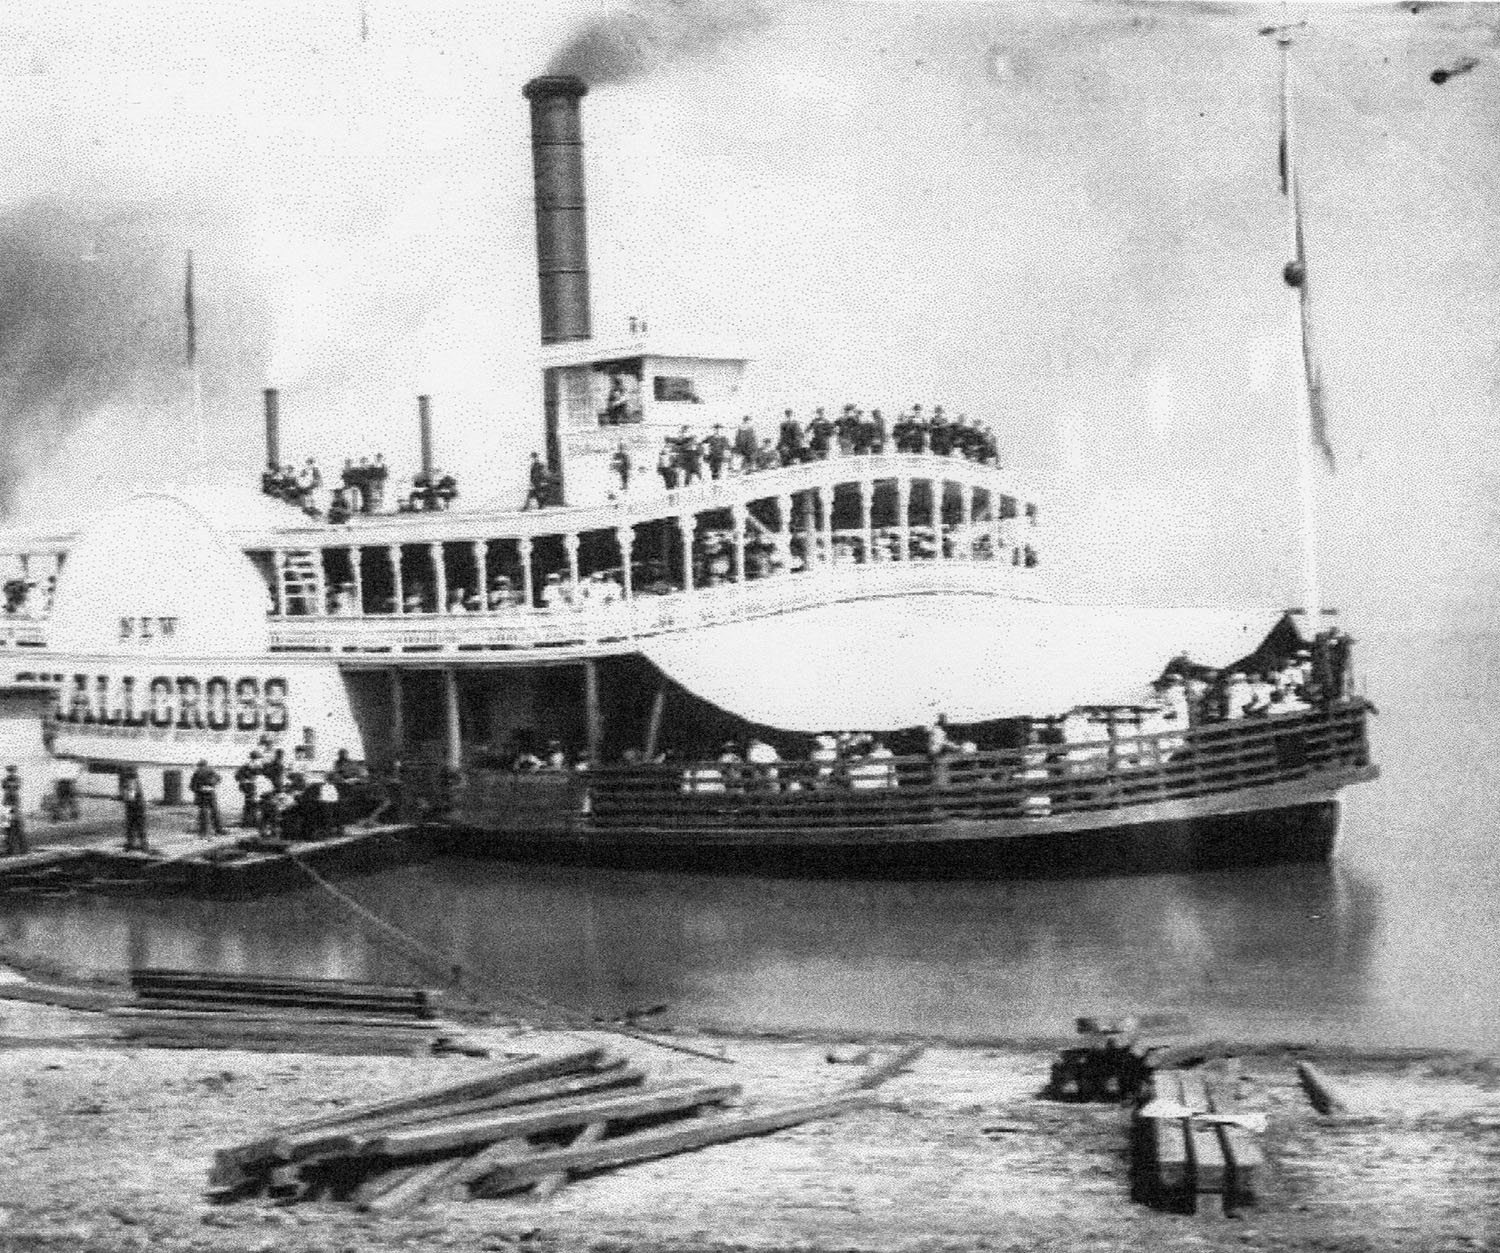 The ferry New Shallcross was built in 1877 from identical plans for the John Shallcross. (Keith Norrington collection)